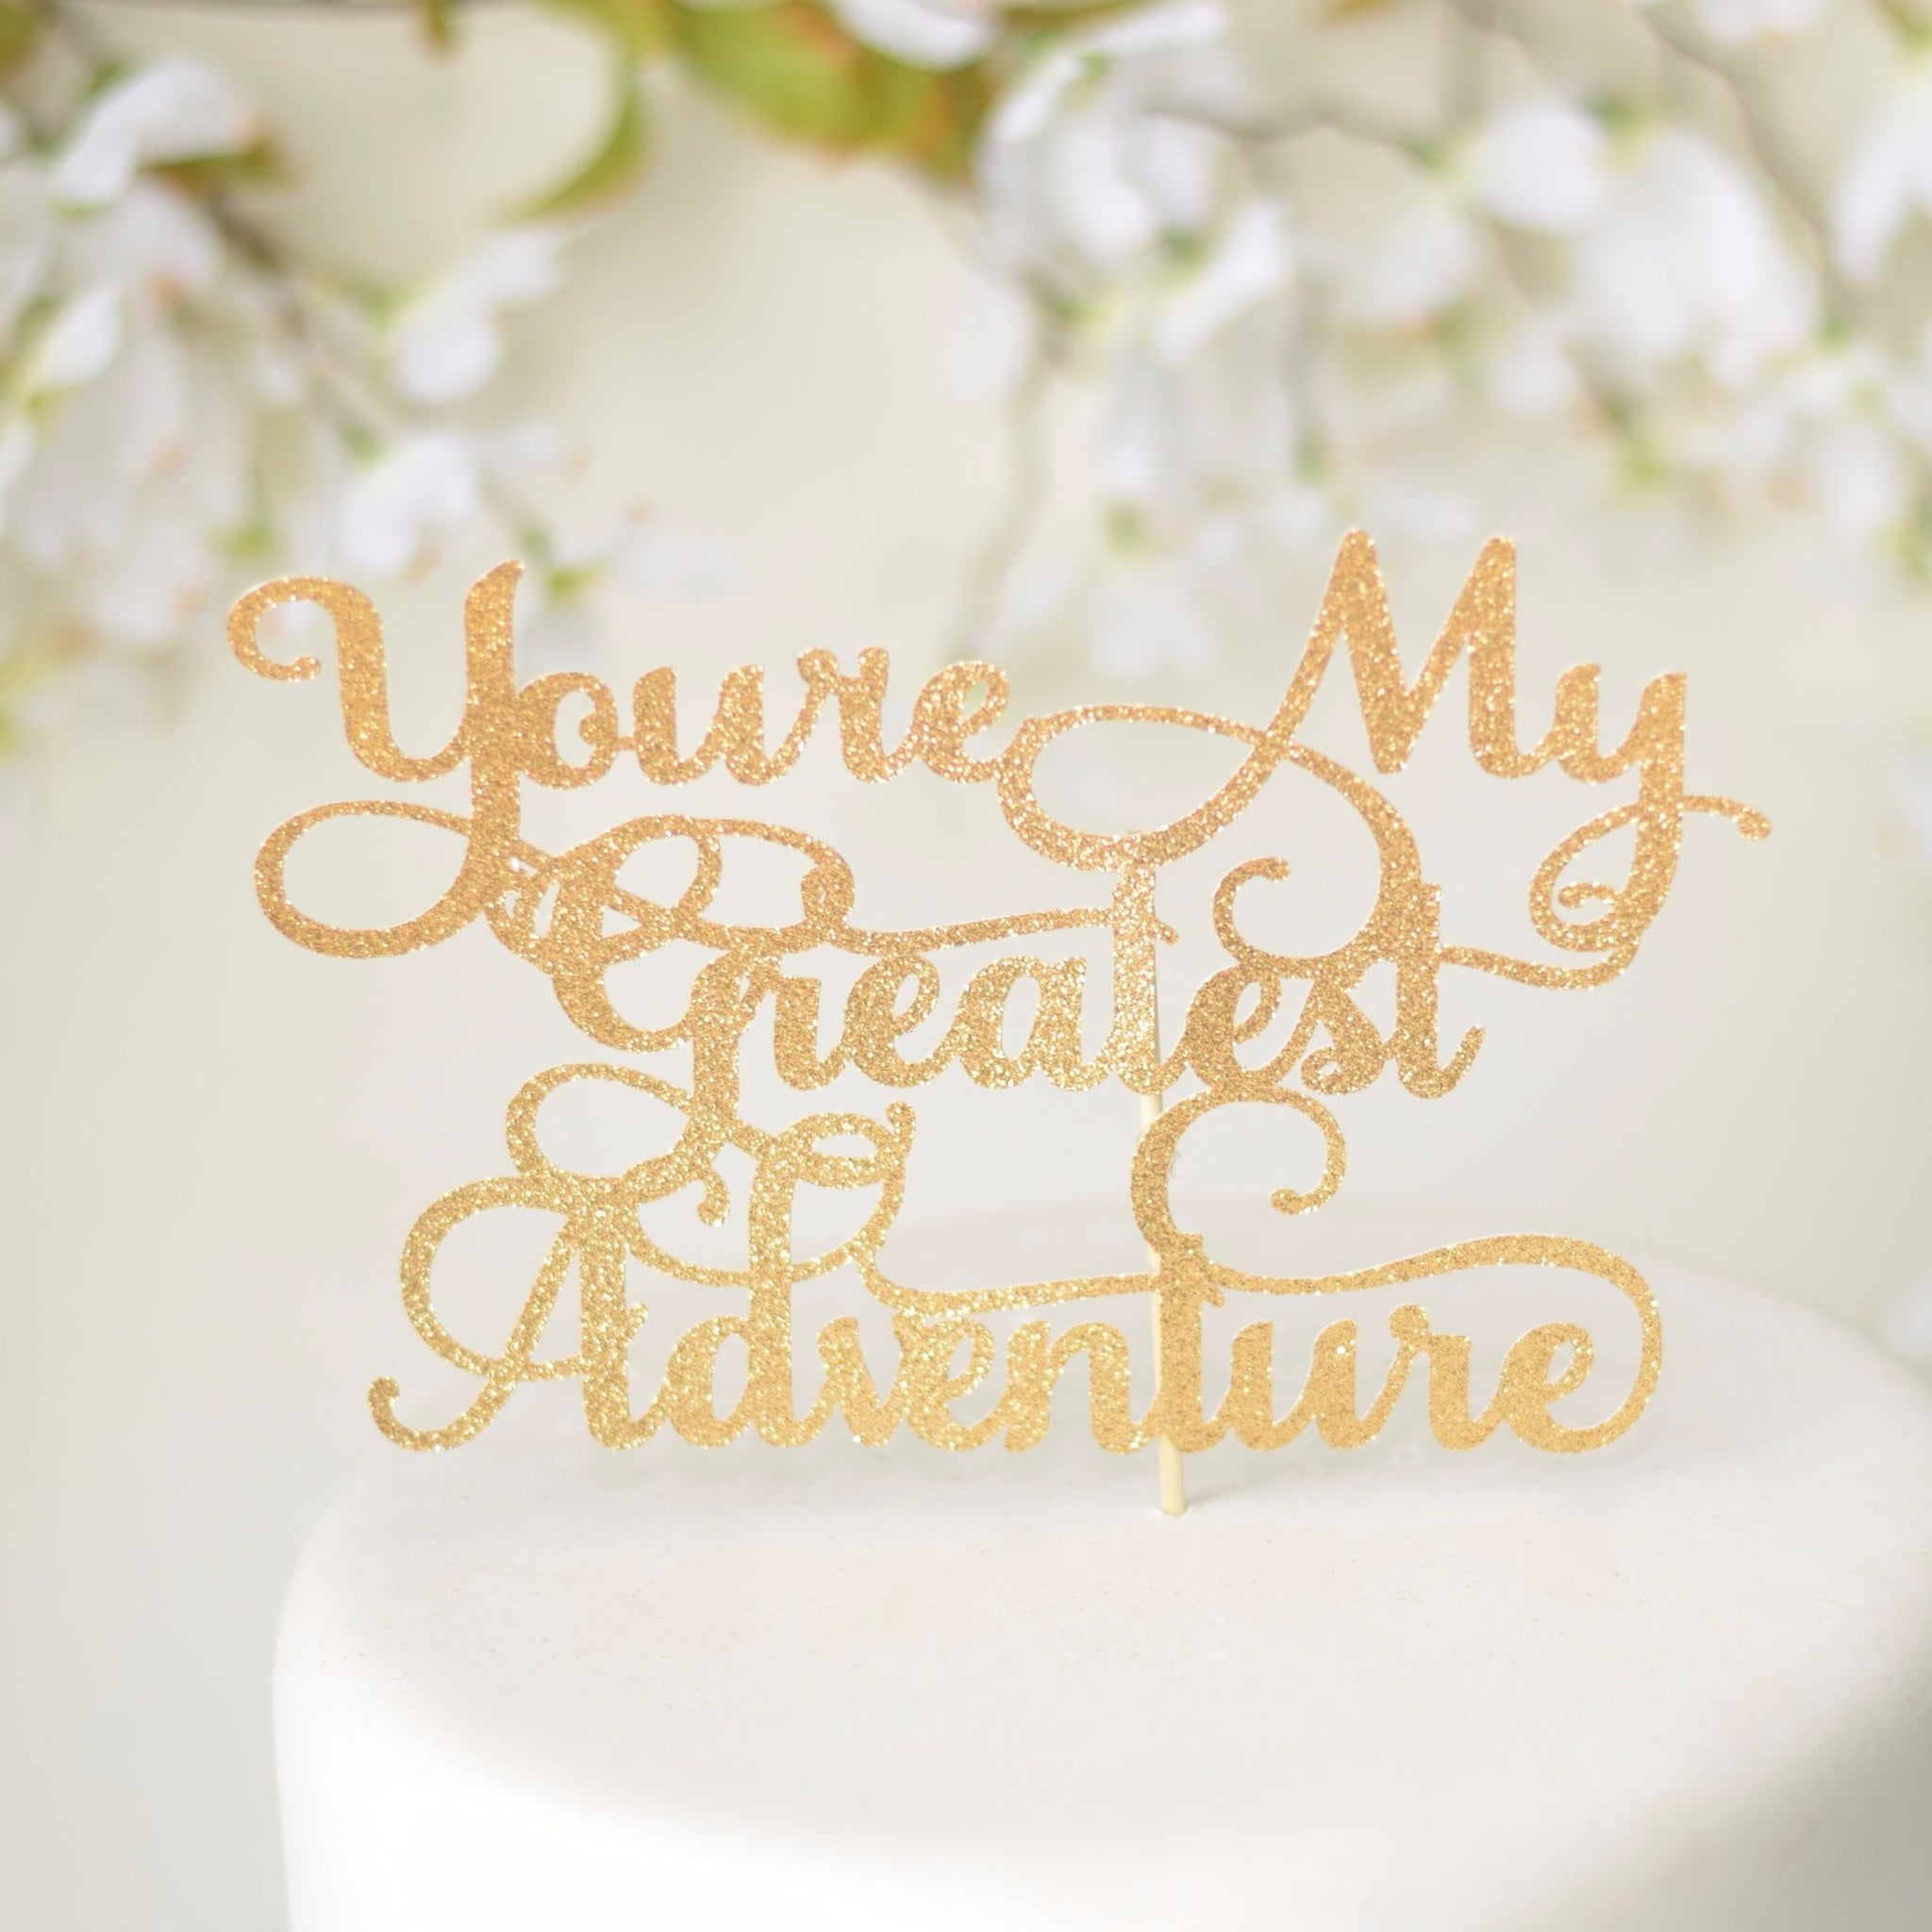 You\'re My Greatest Adventure Wedding Cake Topper - Sugar Crush Co.